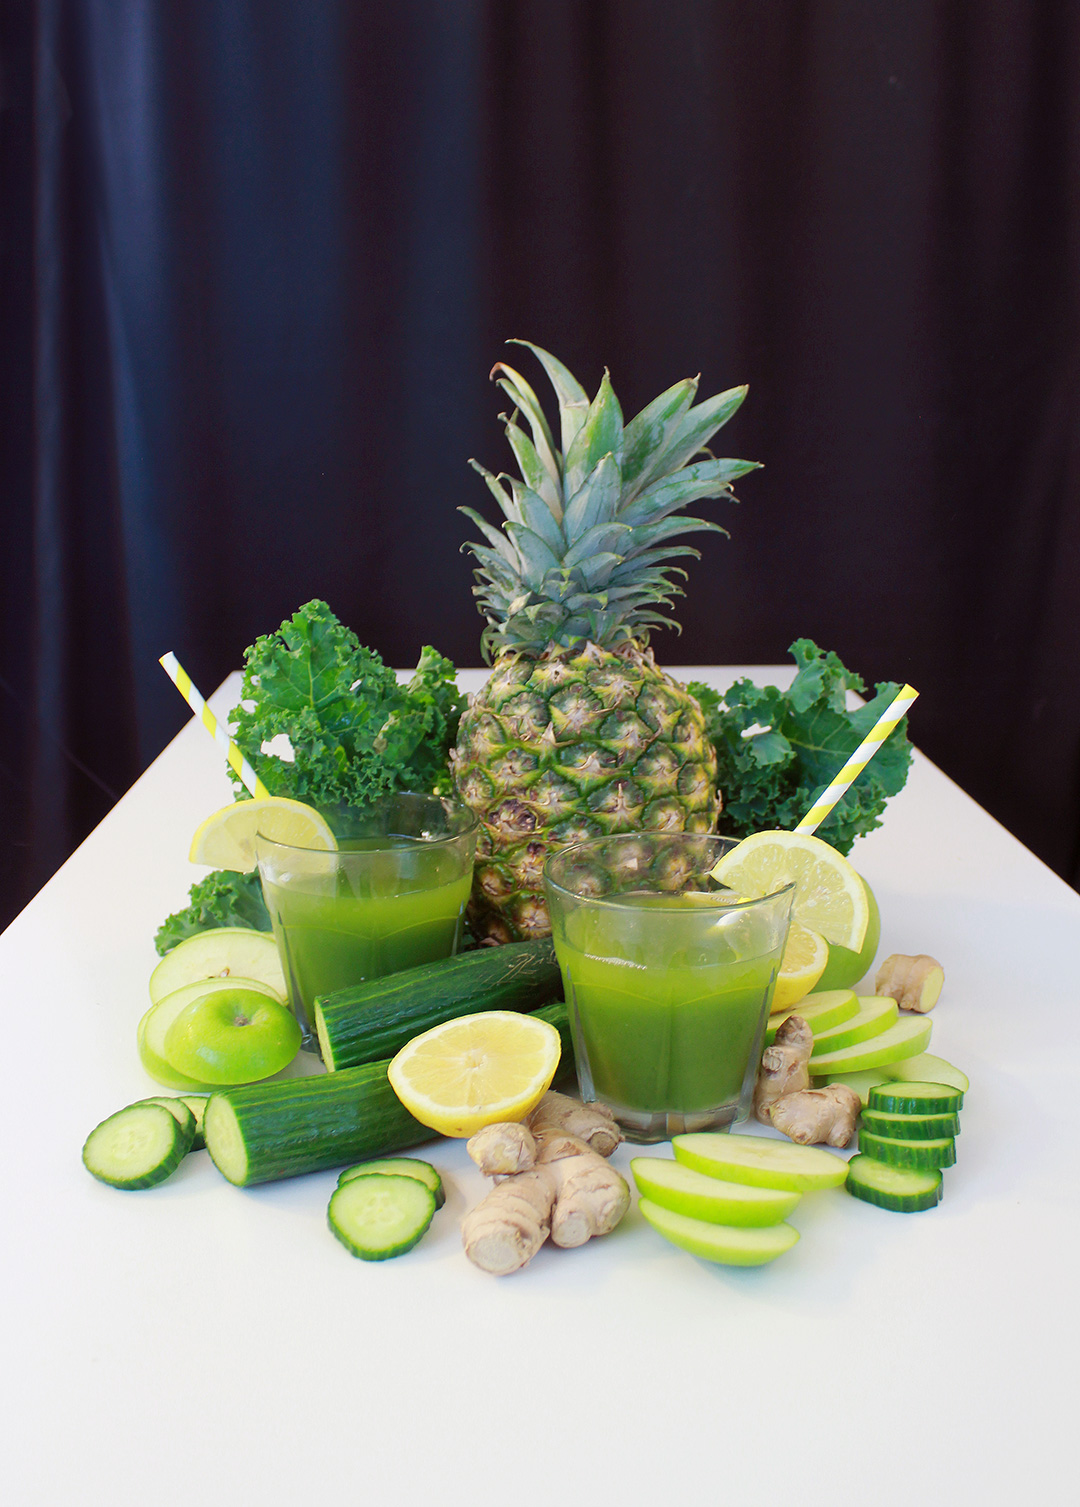 Gradients of green and yellow for a healthy and delicious pineapple green juice!